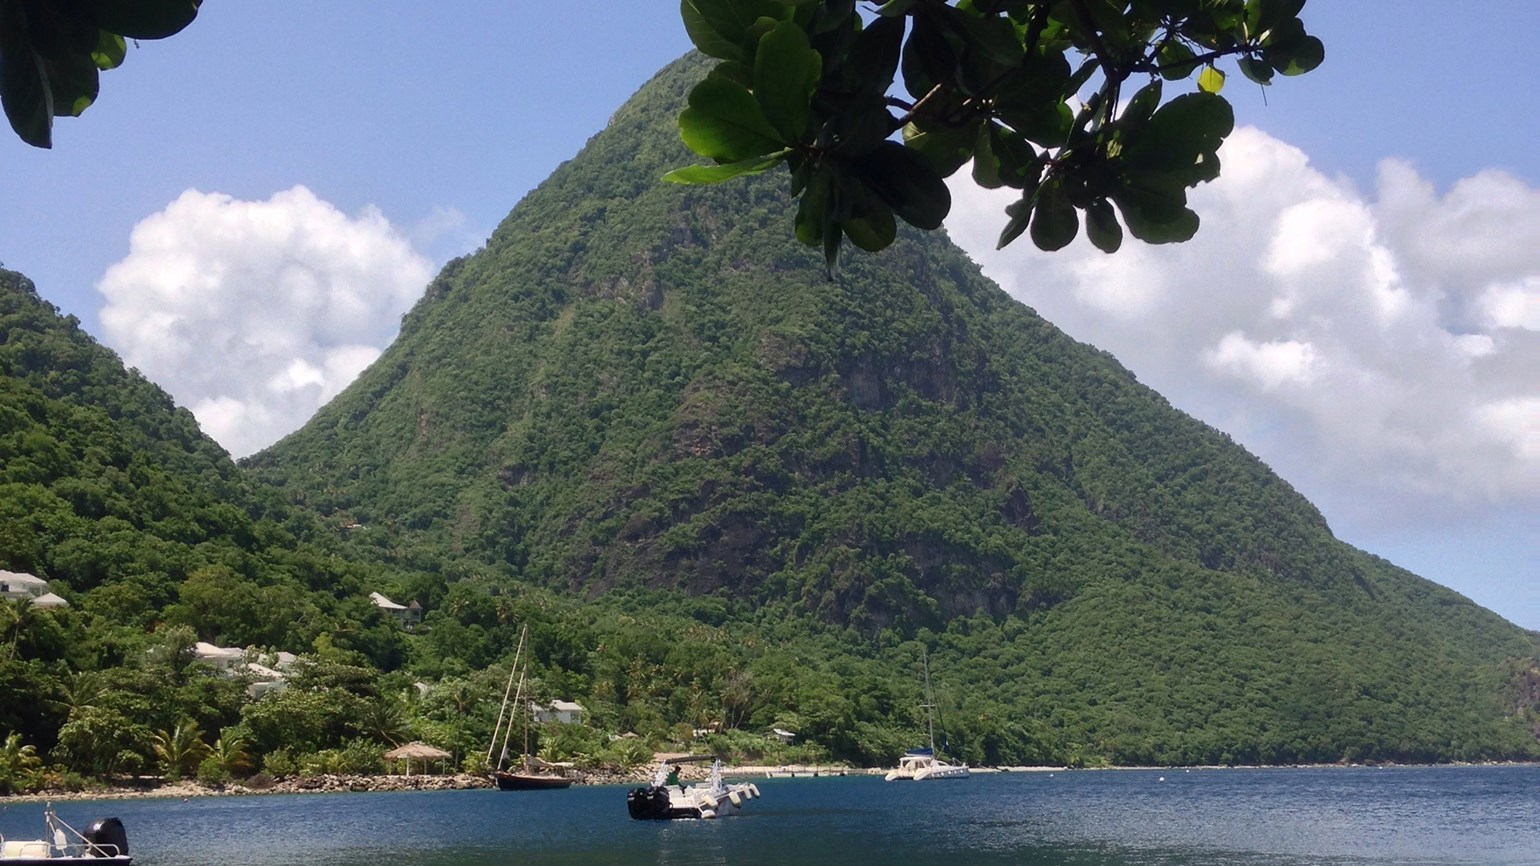 Tourism growth and development in St. Lucia